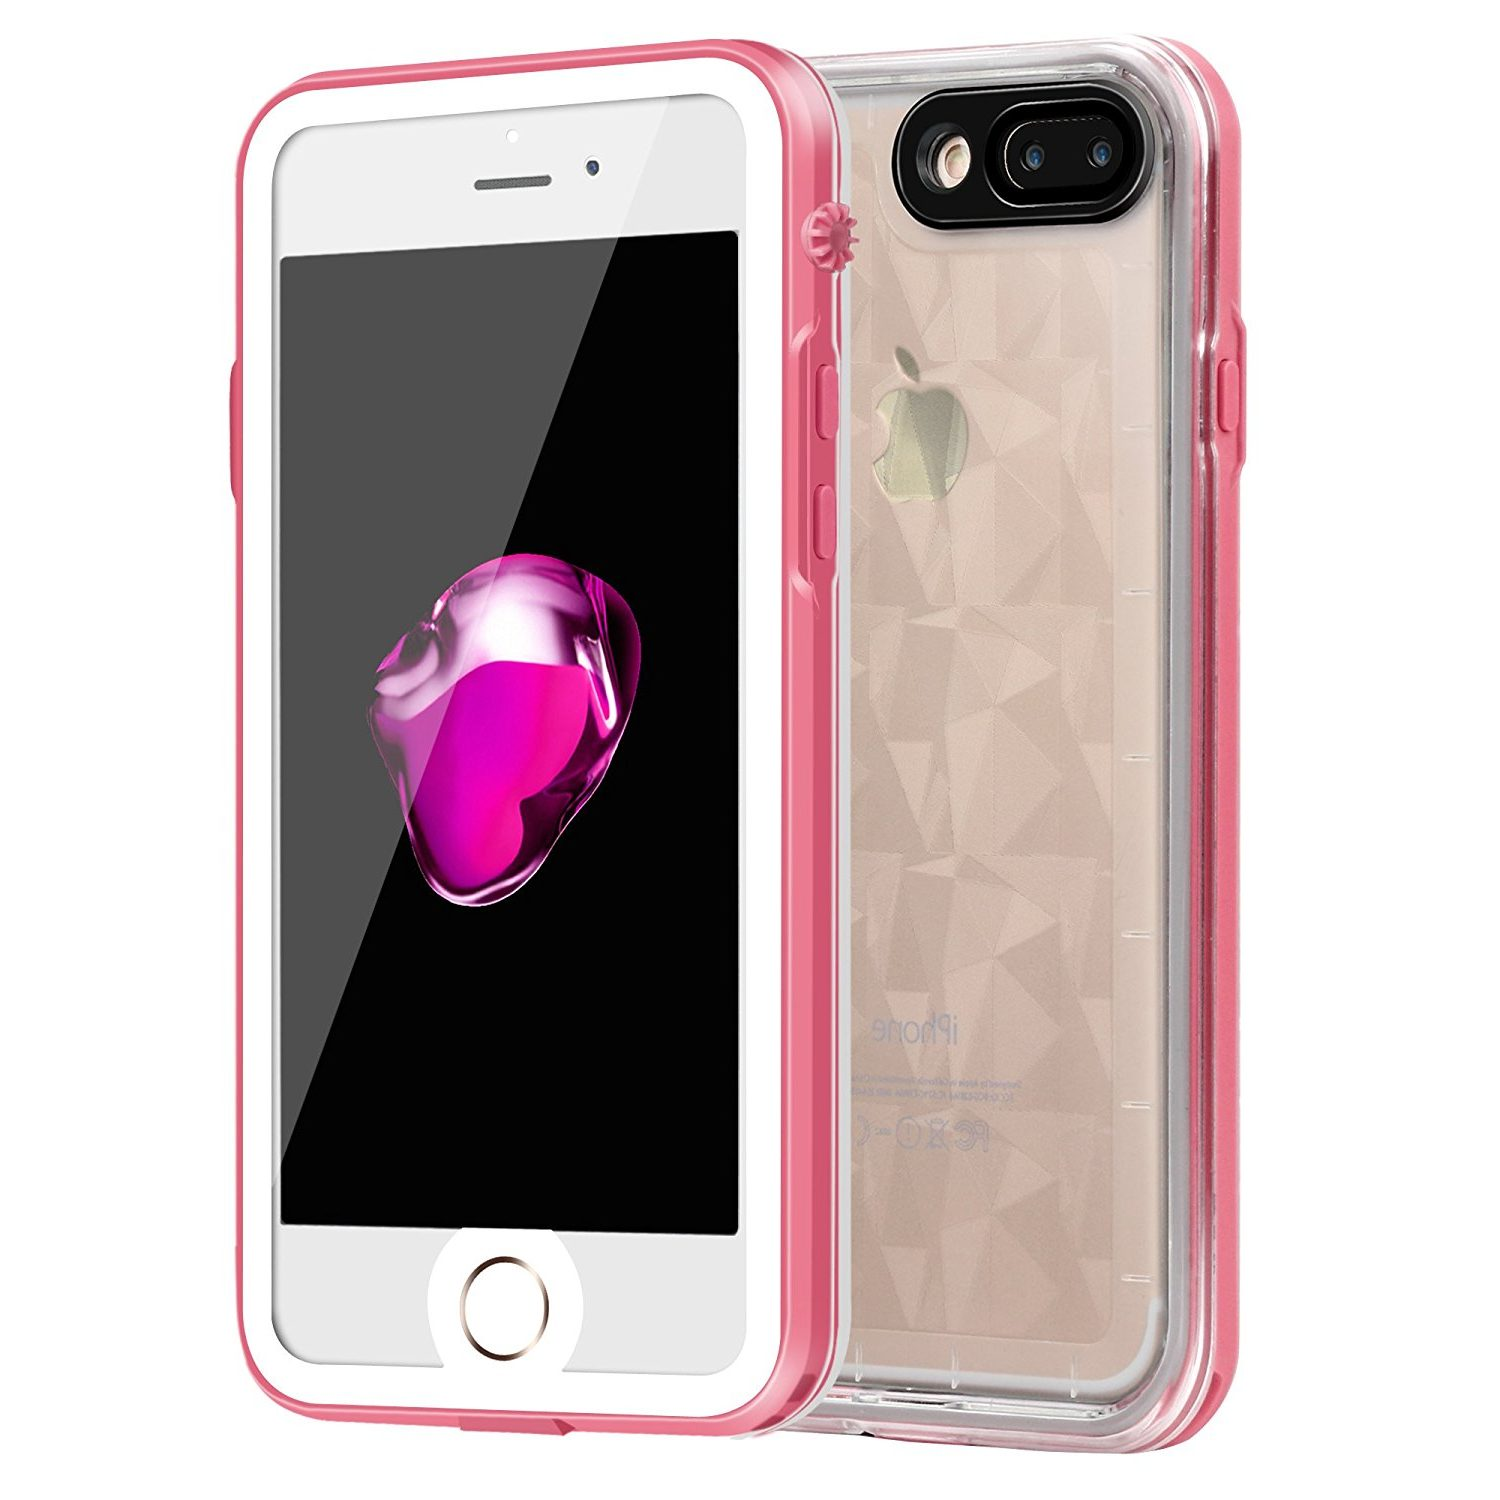 Iphone Case You Can Take Underwater